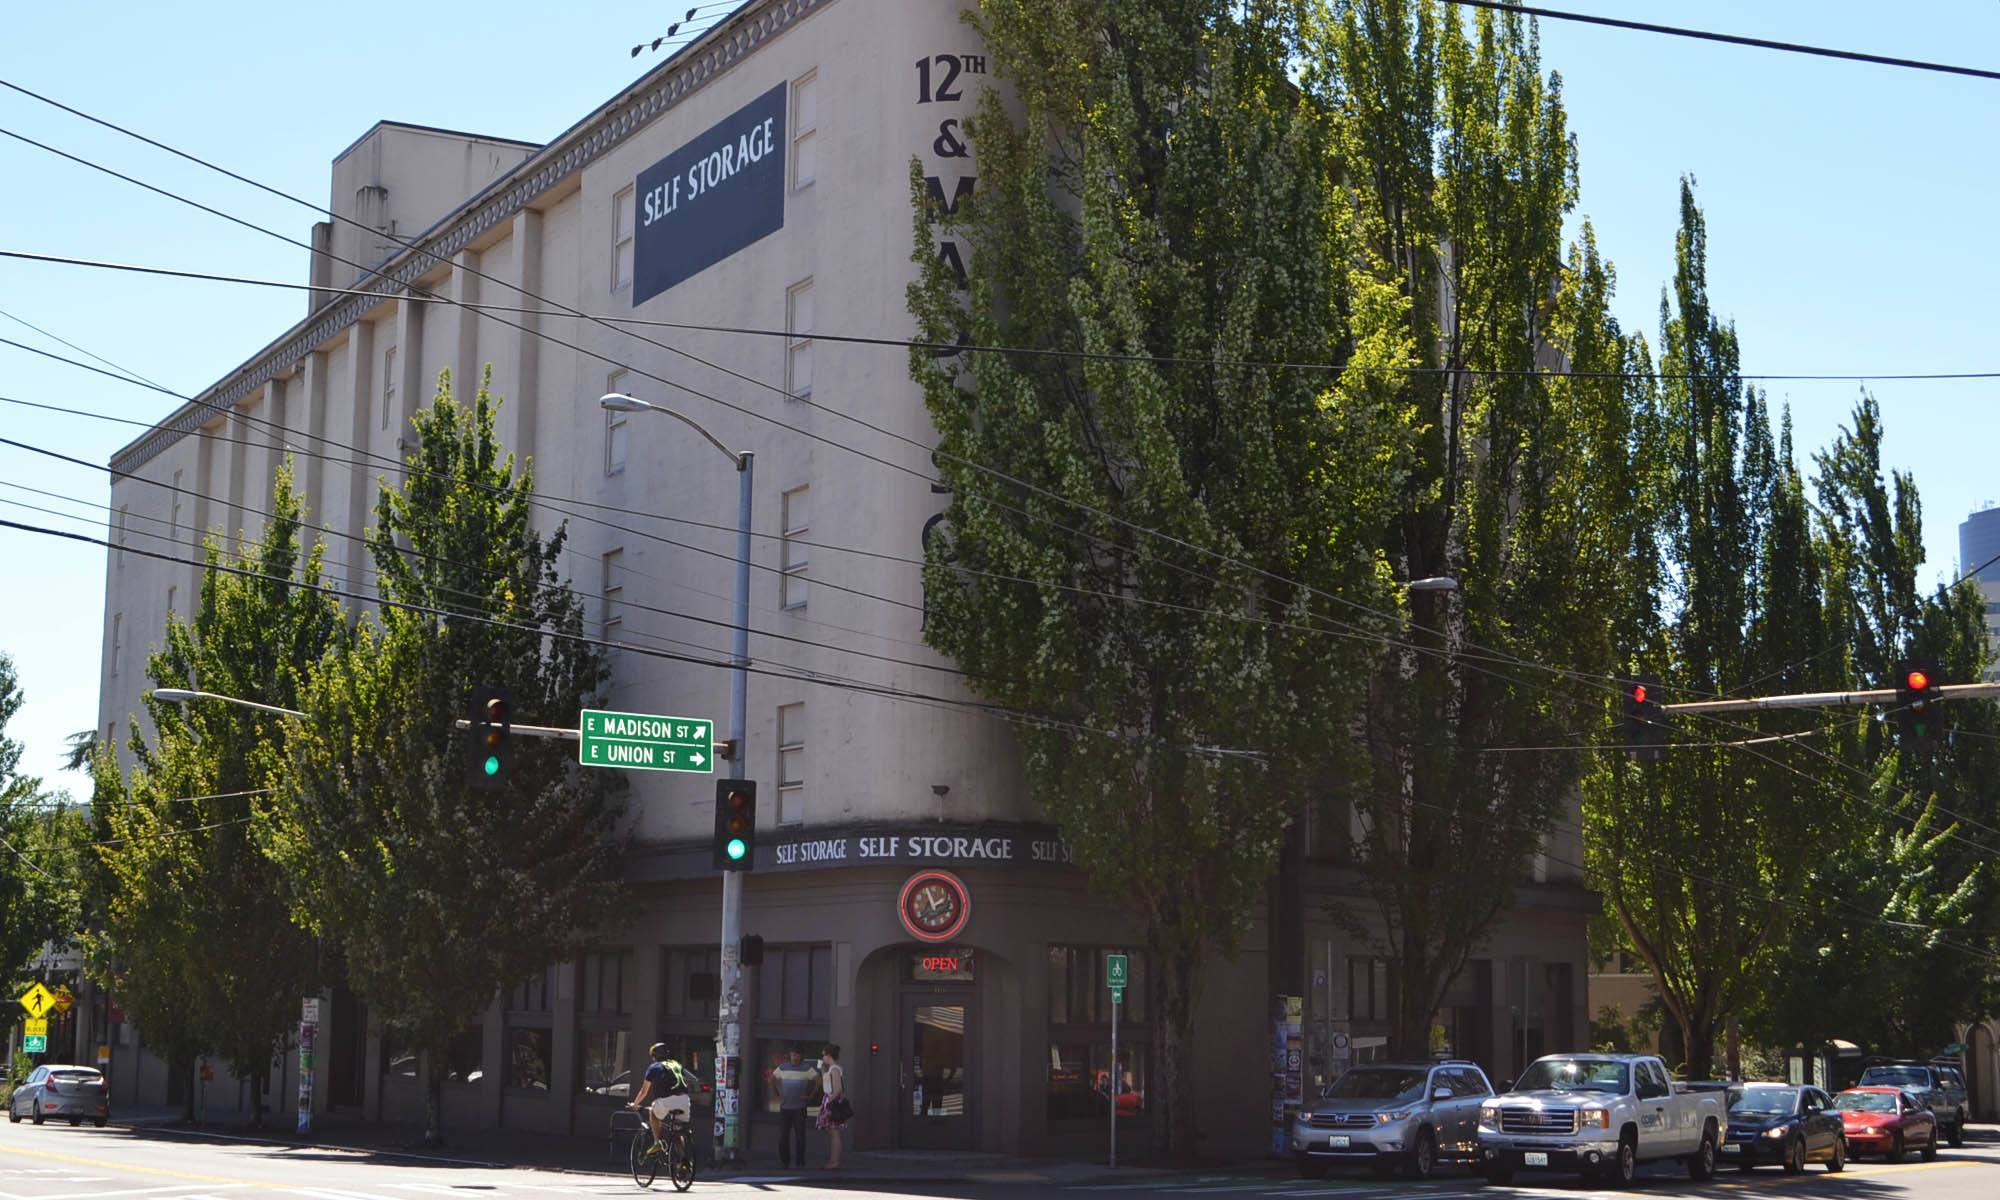 The exterior facade of fantastic self storage in Seattle, WA.